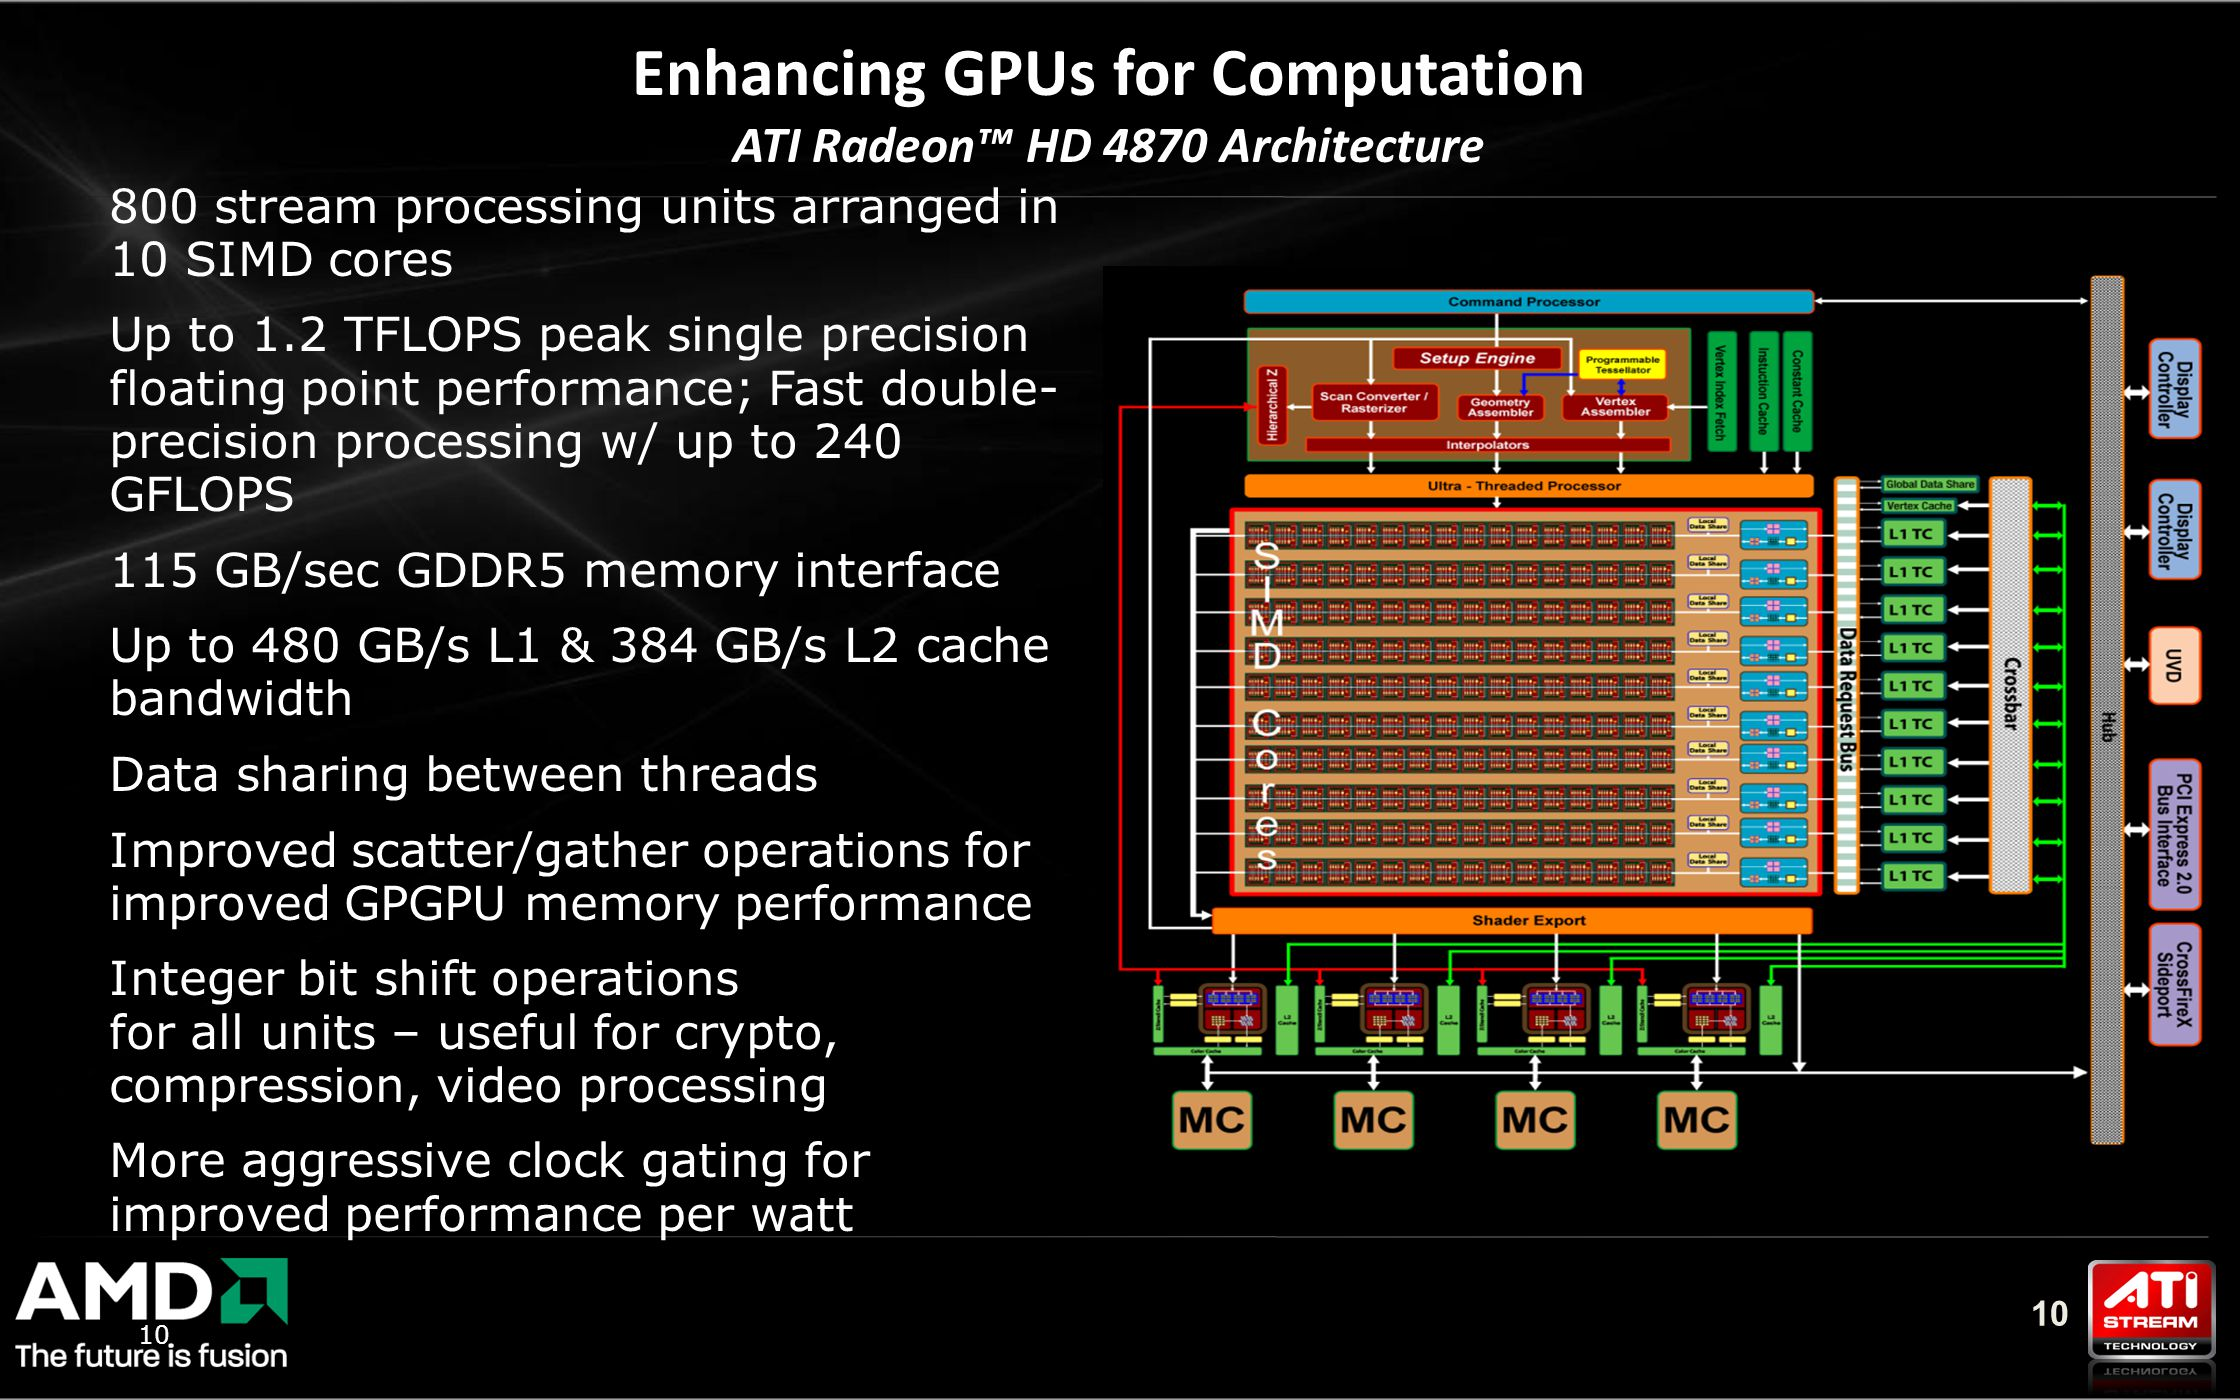 10 Enhancing GPUs for Computation ATI Radeon™ HD 4870 Architecture 800 stream processing units arranged in 10 SIMD cores Up to 1.2 TFLOPS peak single precision floating point performance; Fast double- precision processing w/ up to 240 GFLOPS 115 GB/sec GDDR5 memory interface Up to 480 GB/s L1 & 384 GB/s L2 cache bandwidth Data sharing between threads Improved scatter/gather operations for improved GPGPU memory performance Integer bit shift operations for all units – useful for crypto, compression, video processing More aggressive clock gating for improved performance per watt